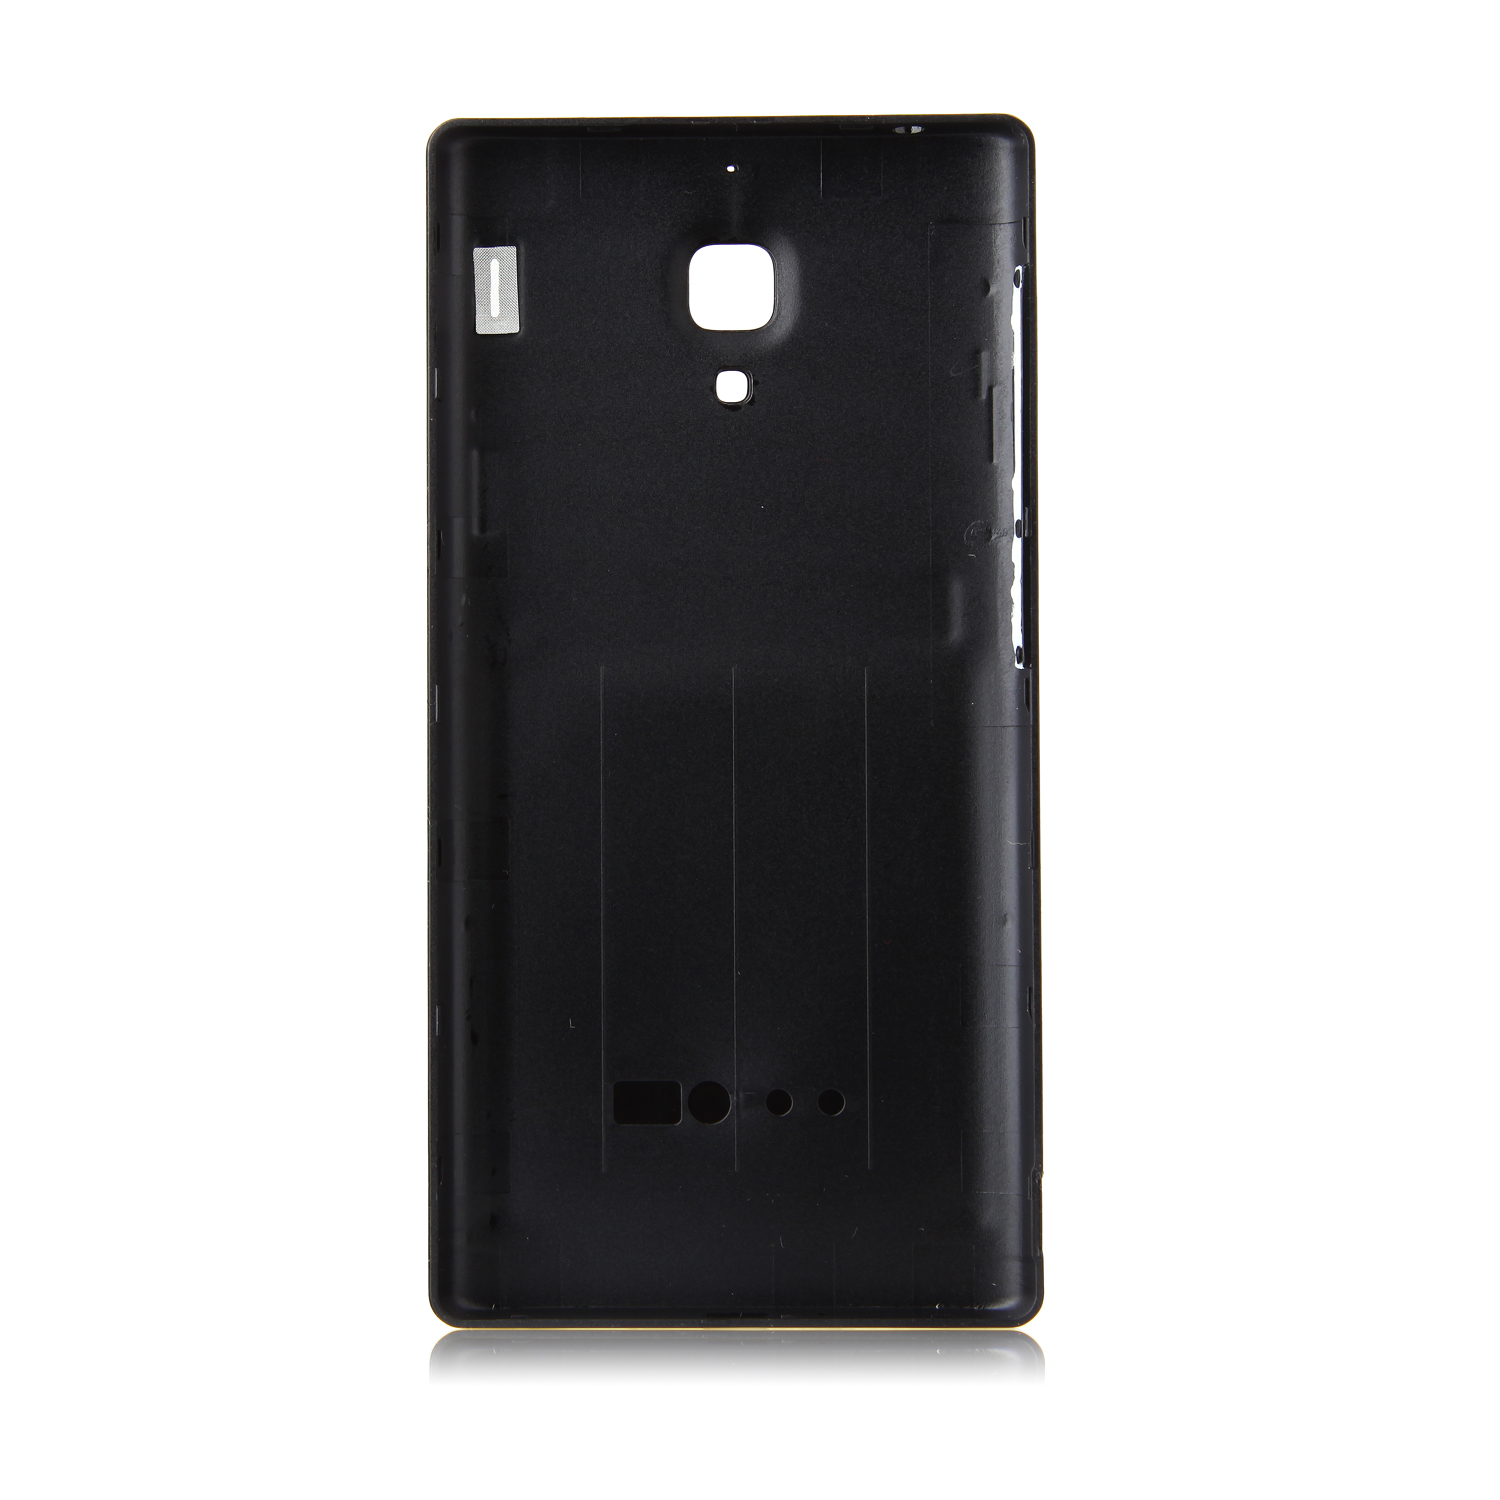 Replacement Battery Cover Back Case for XIAOMI Redmi 1S Smartphone Black